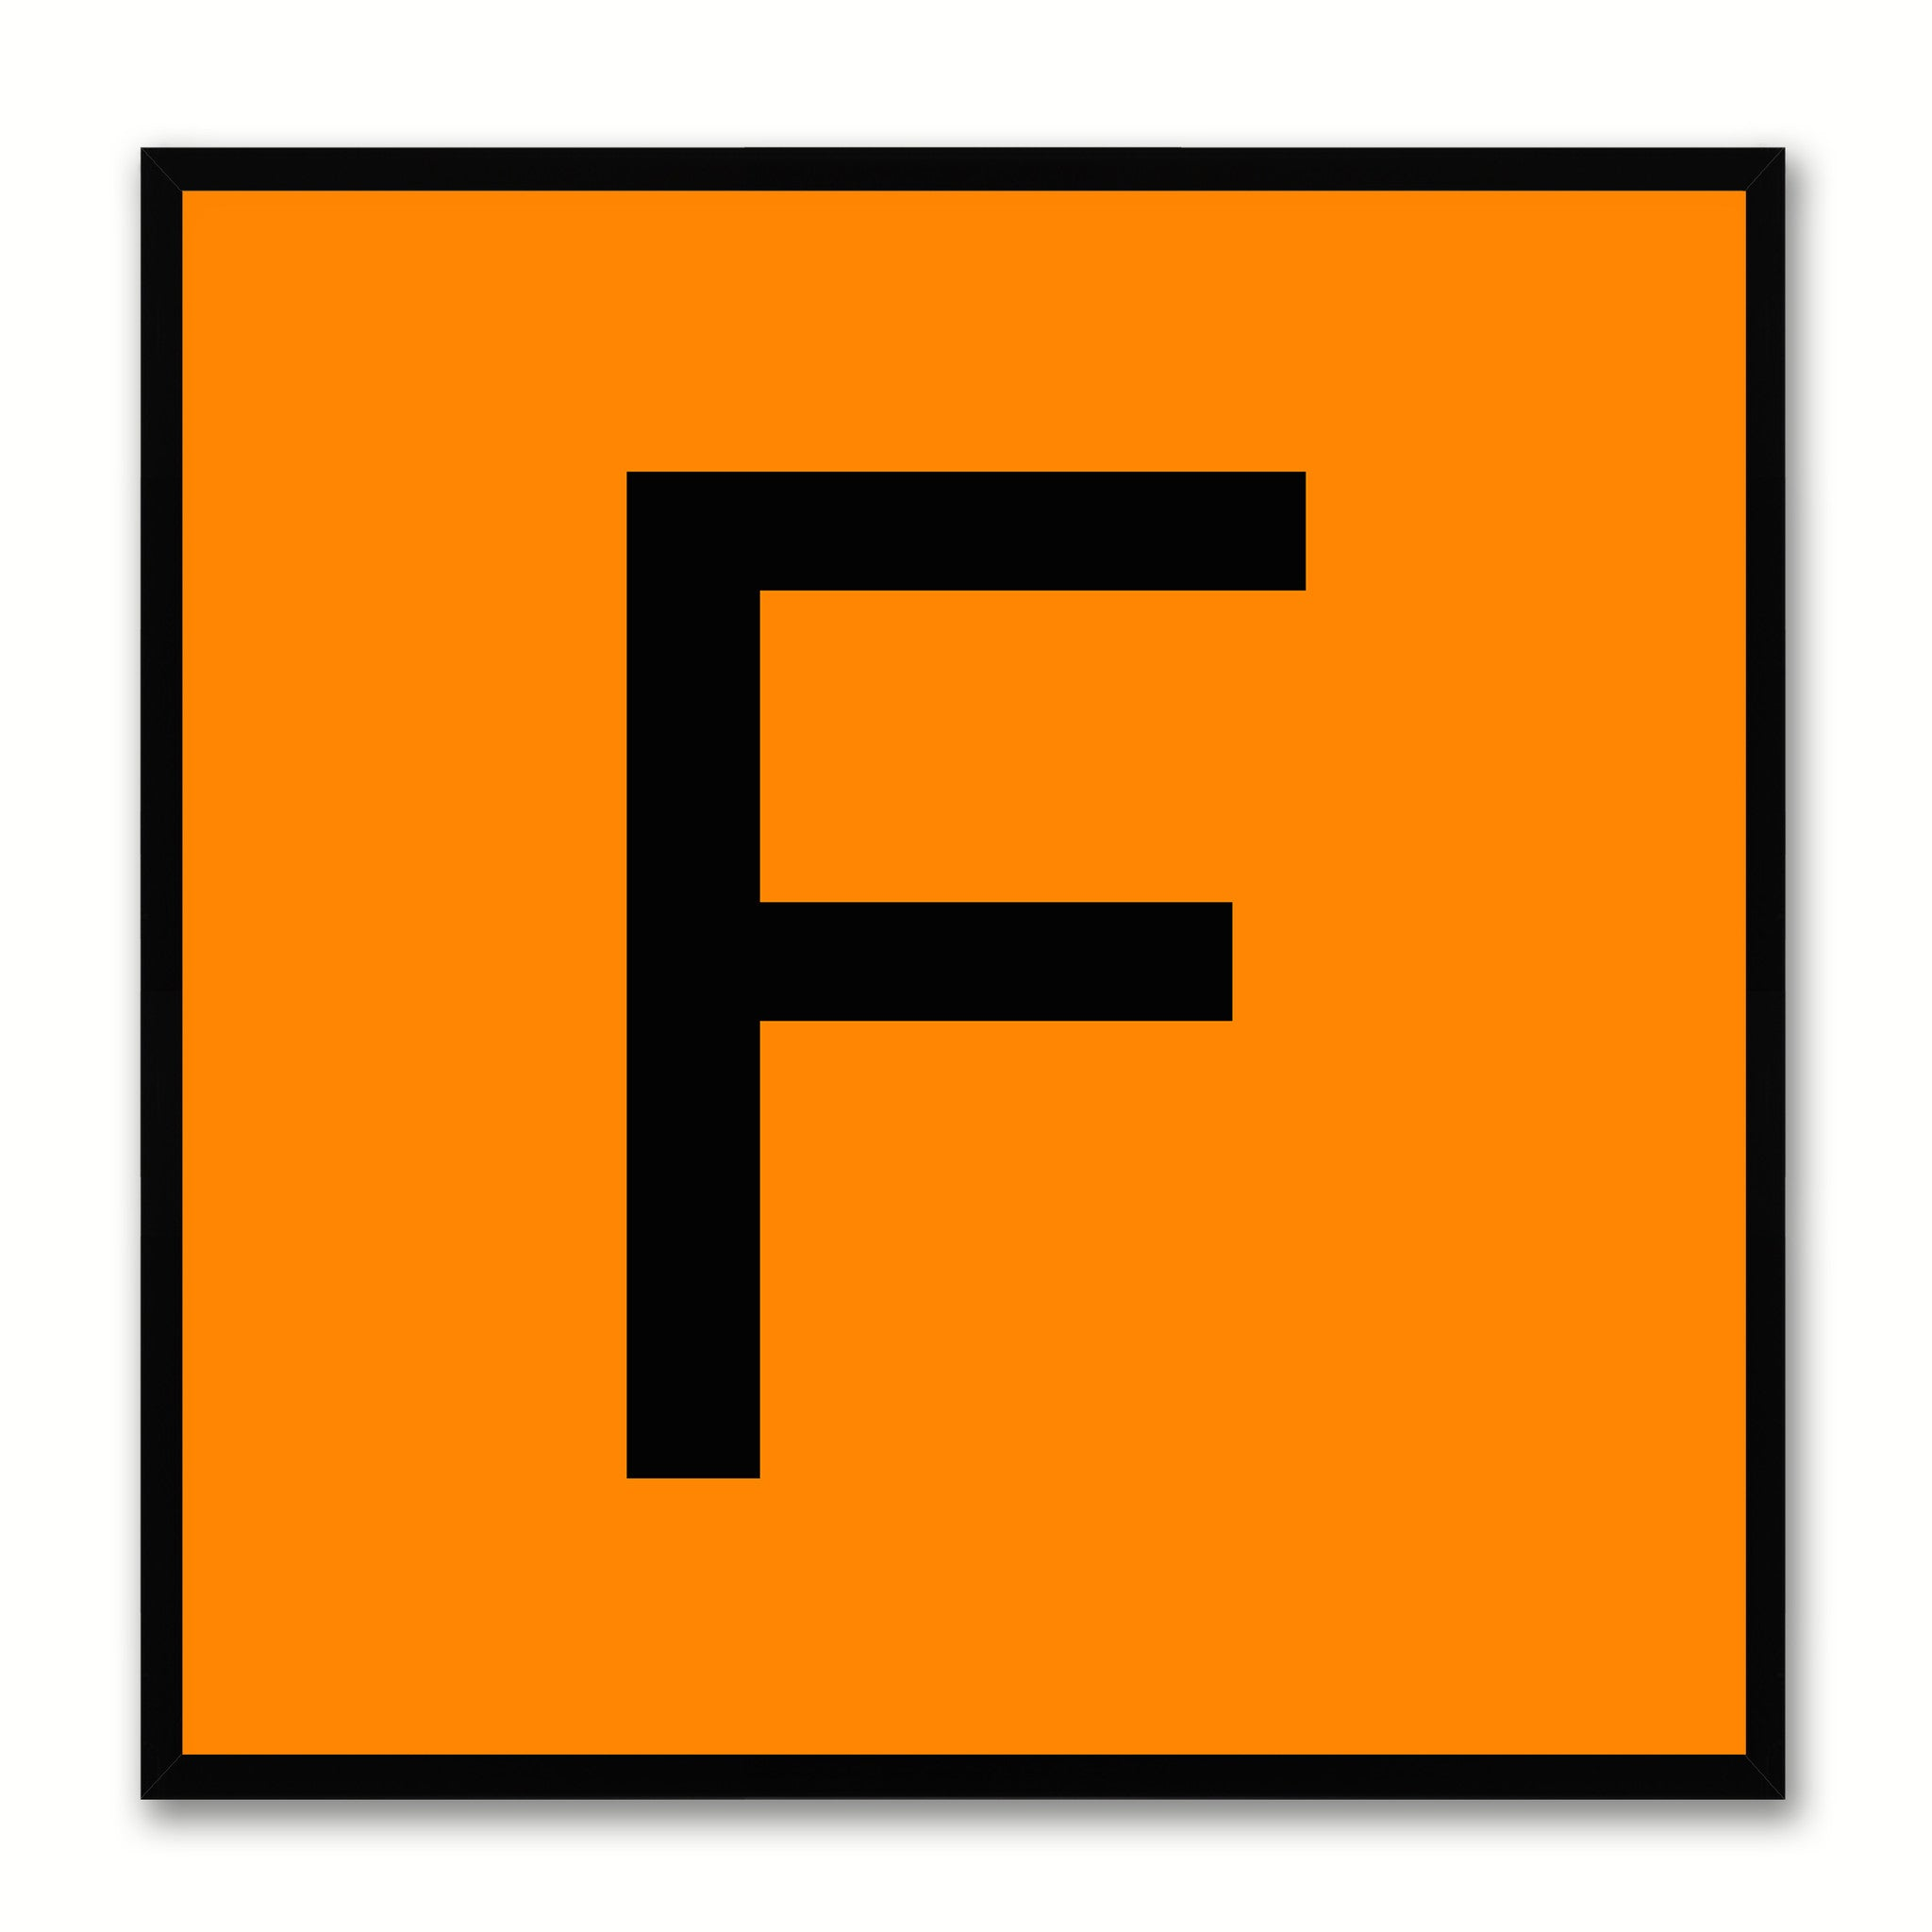 Alphabet F Orange Canvas Print Black Frame Kids Bedroom Wall Décor Home Art